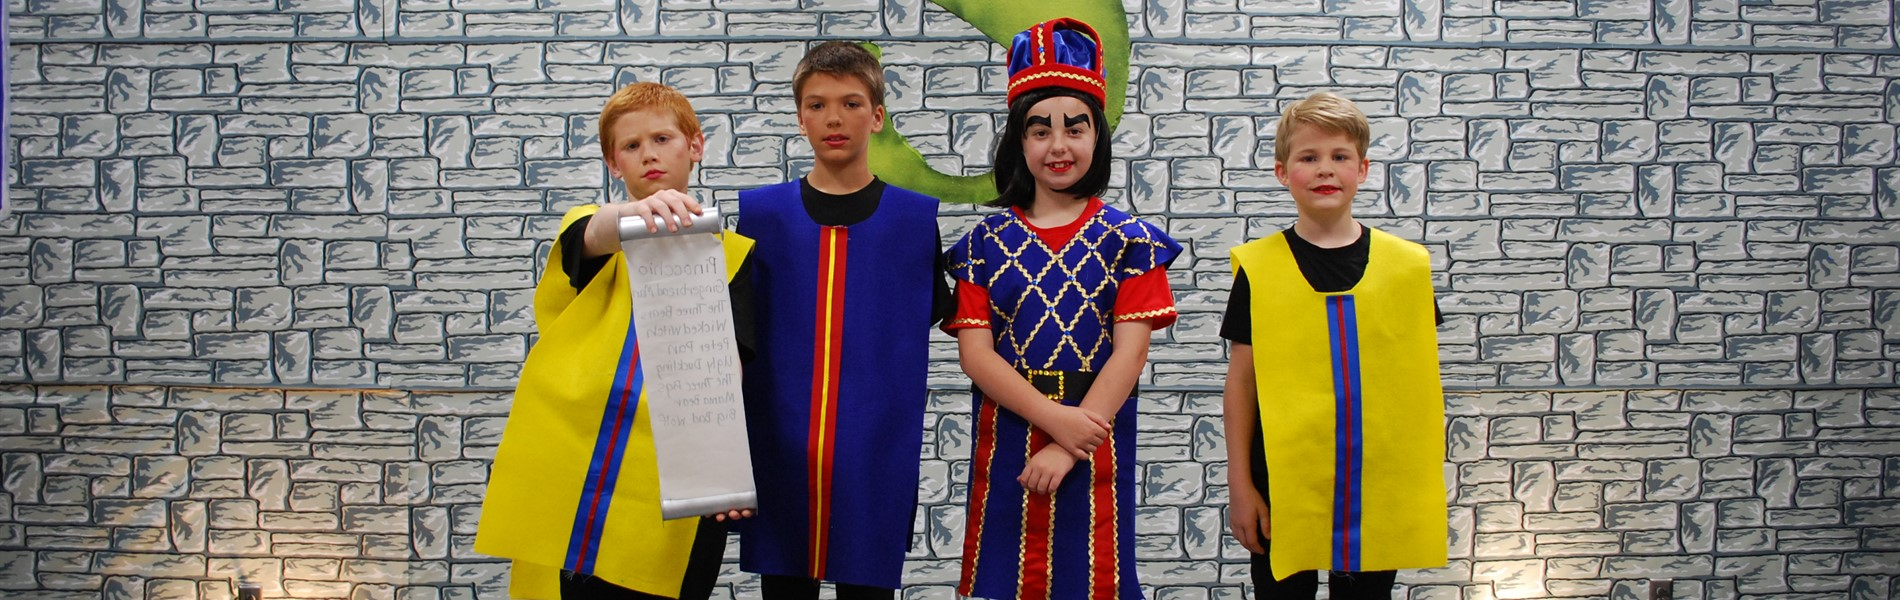 Patterson students that were in the Shrek drama